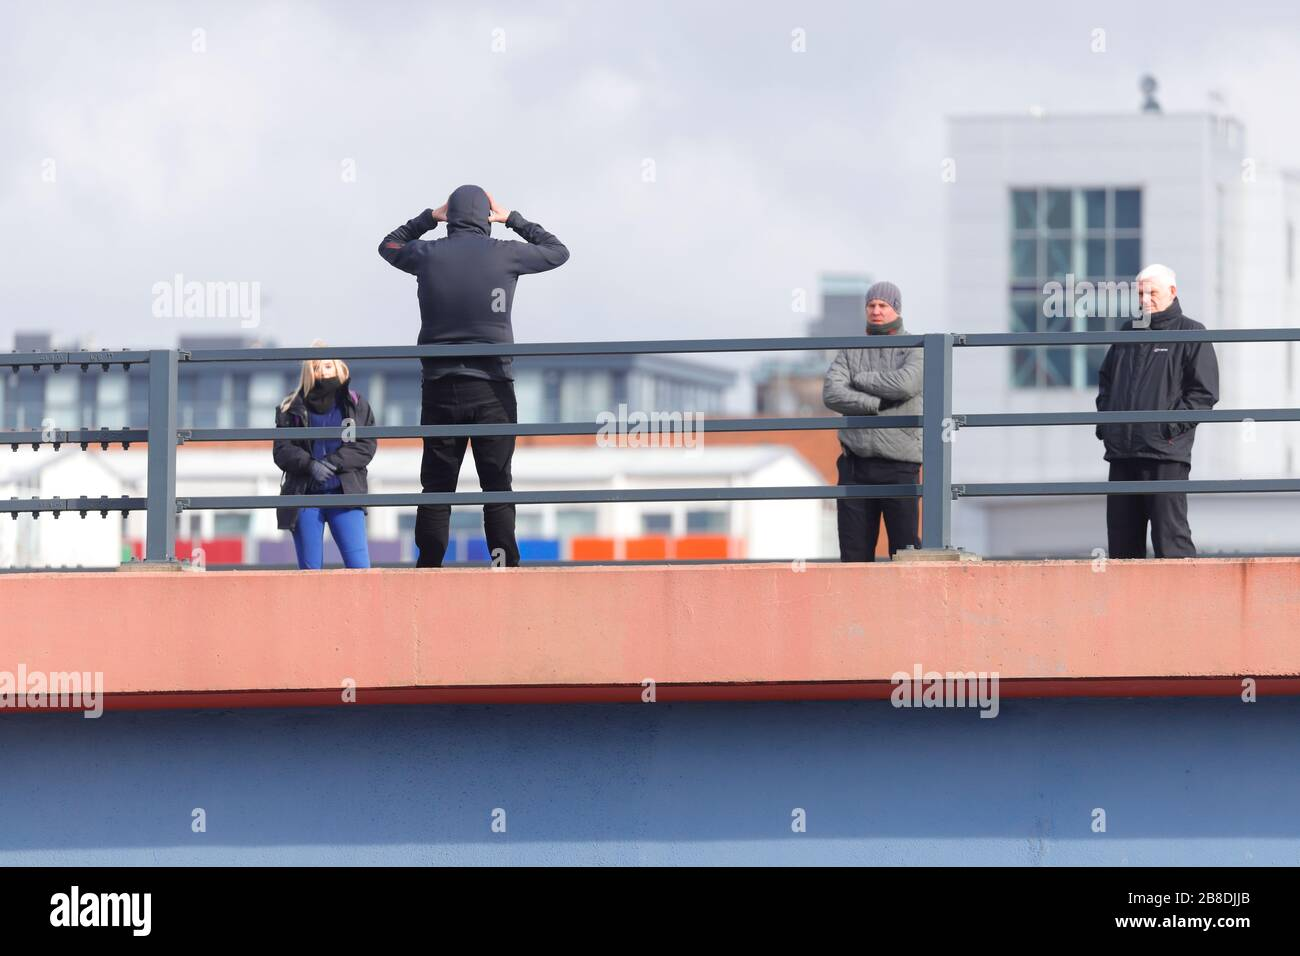 A man who threatened to throw himself off a bridge in Leeds, is seen speaking to negotiators, who managed to talk him to safety after 4 hours Stock Photo